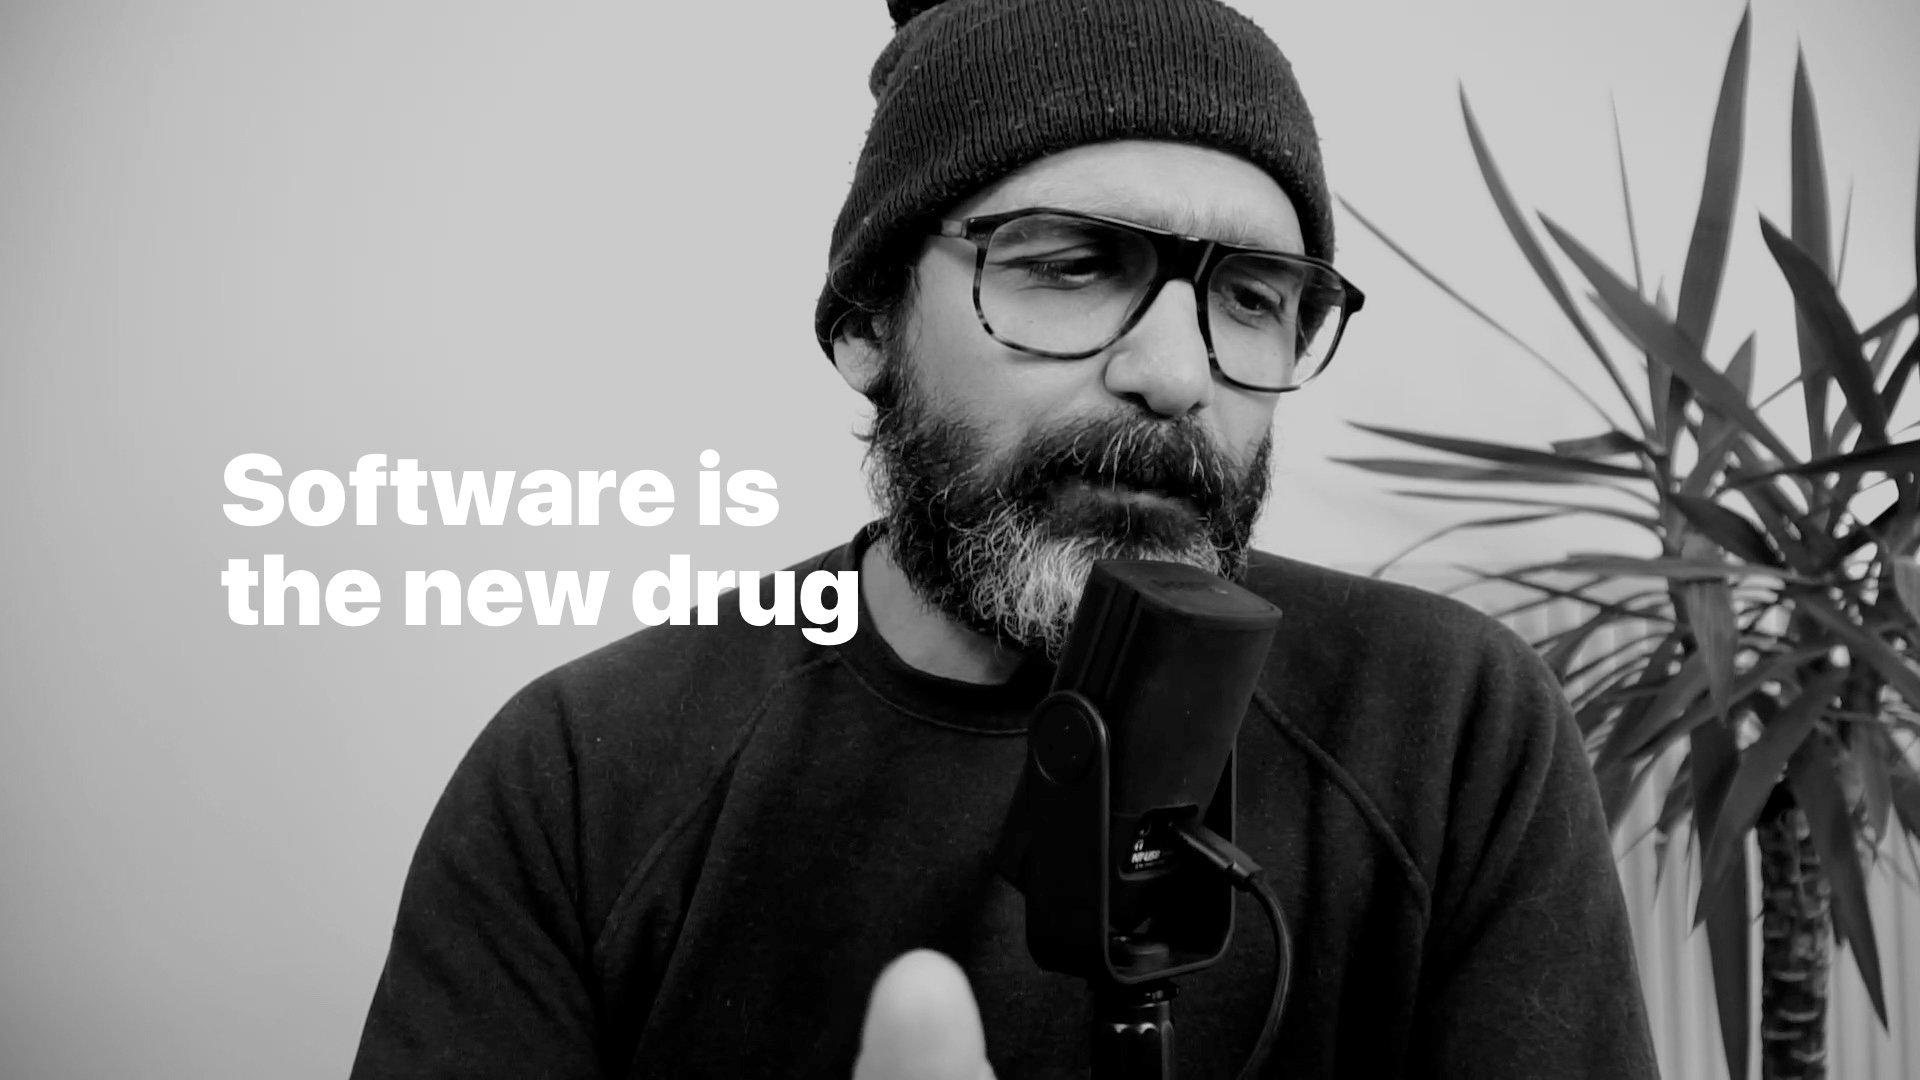 Software is the new drug